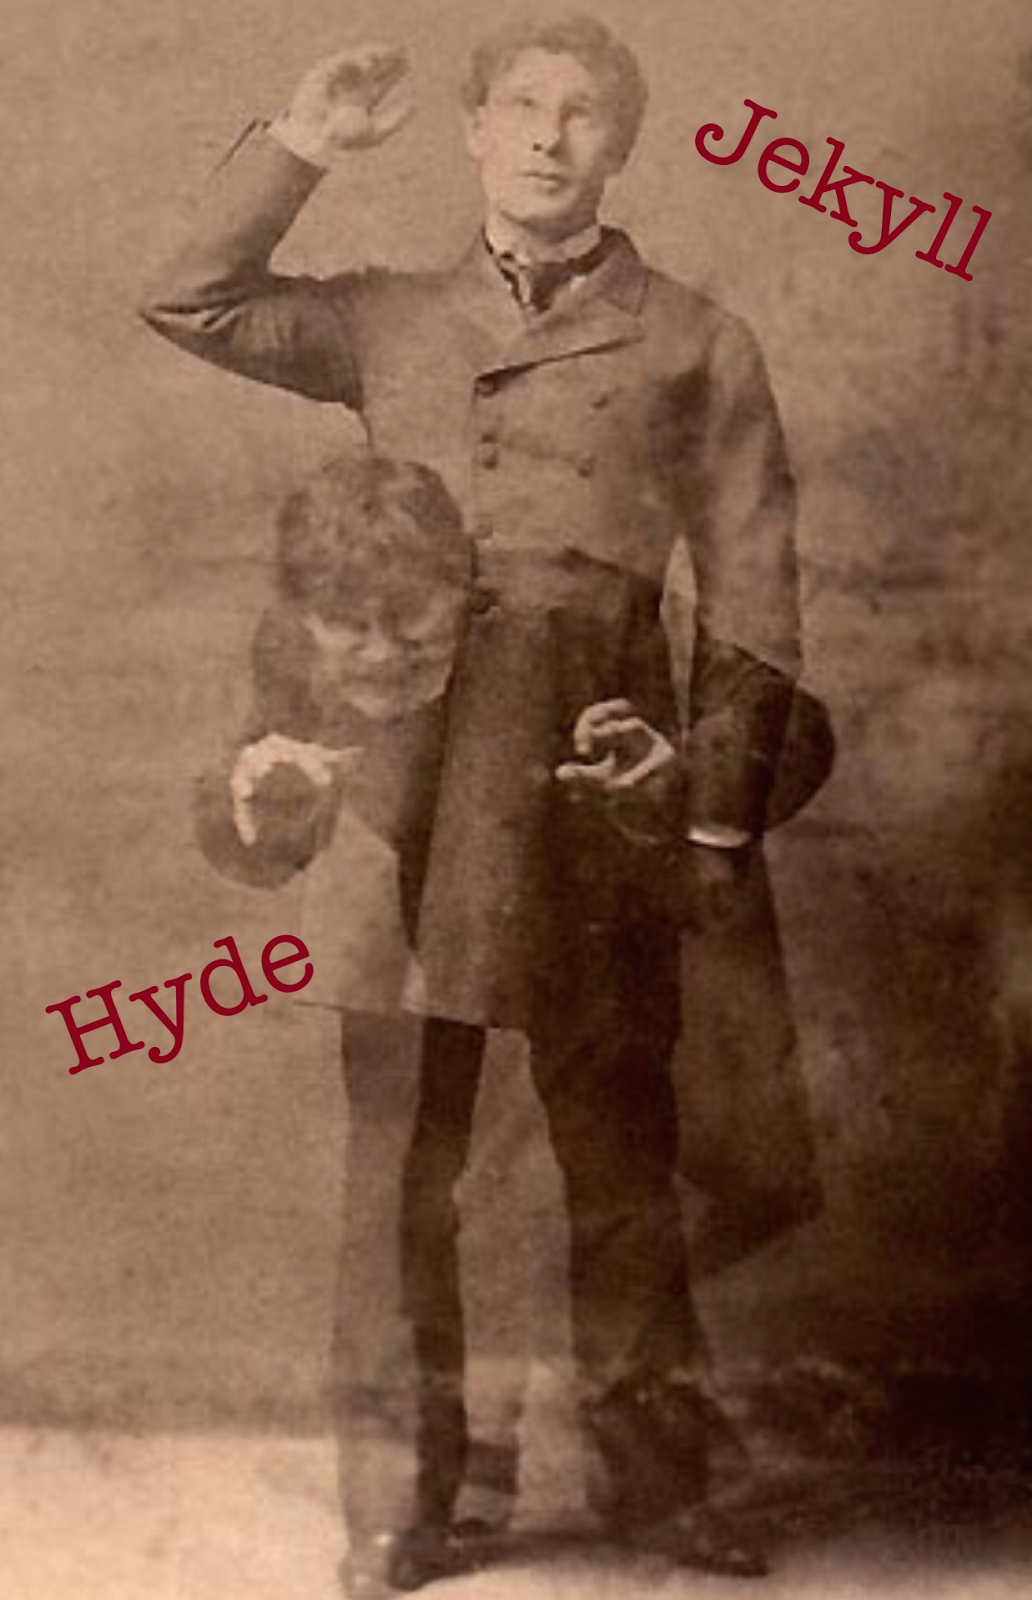 Jekyll and Hyde Contrast